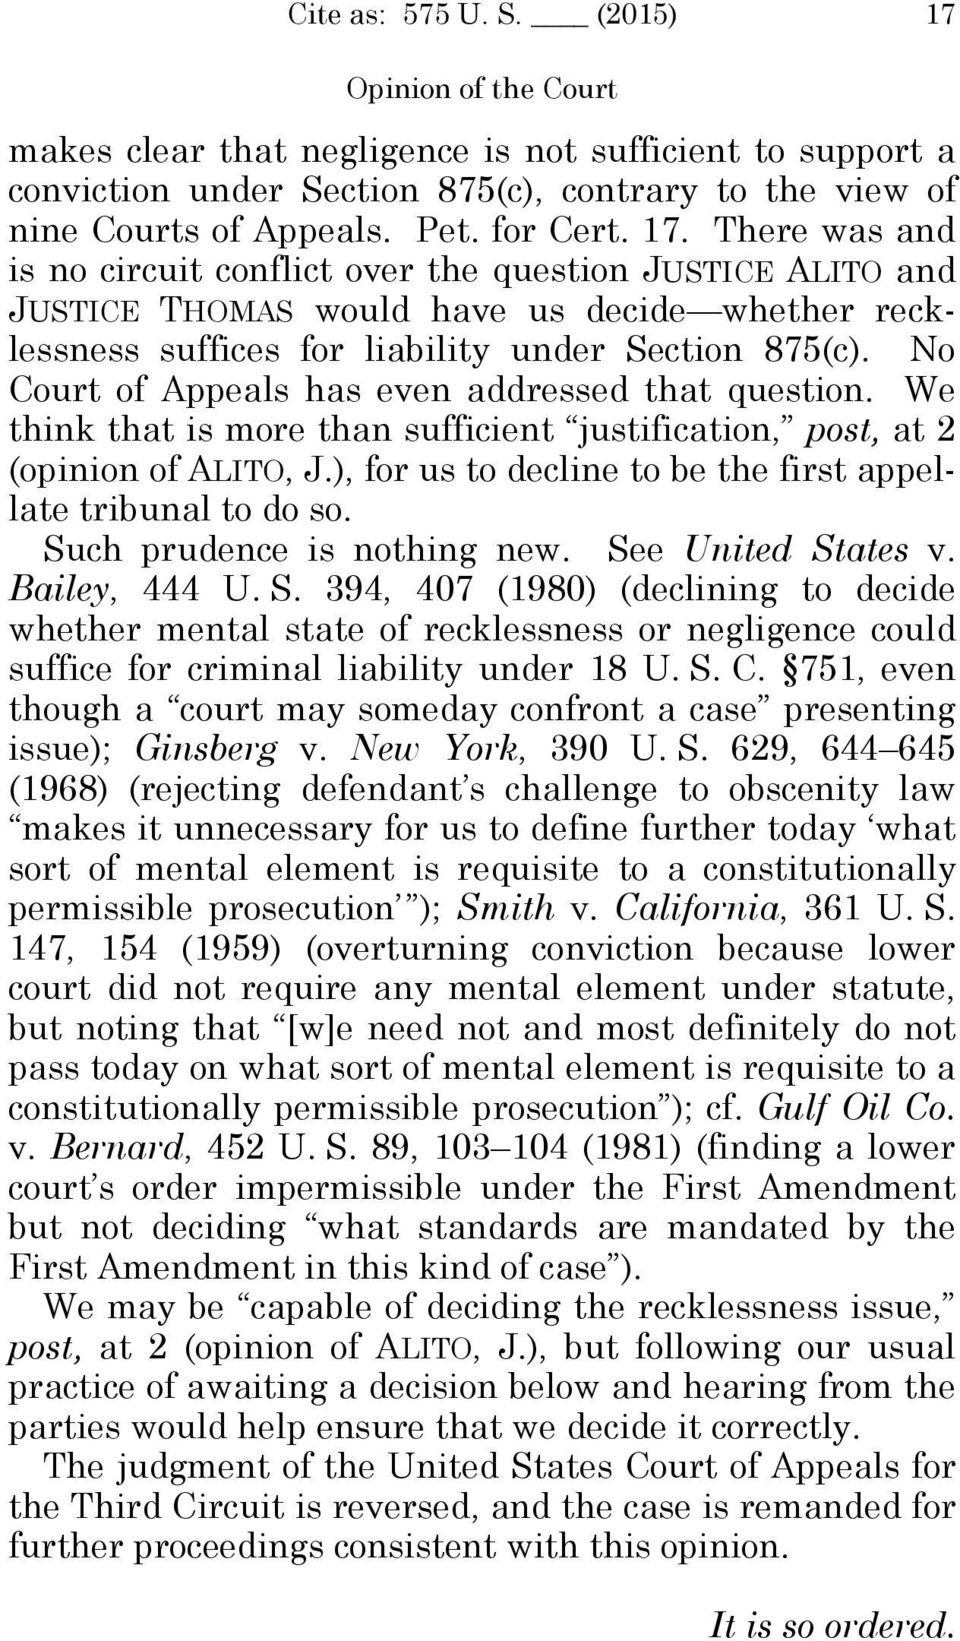 No Court of Appeals has even addressed that question. We think that is more than sufficient justification, post, at 2 (opinion of ALITO, J.